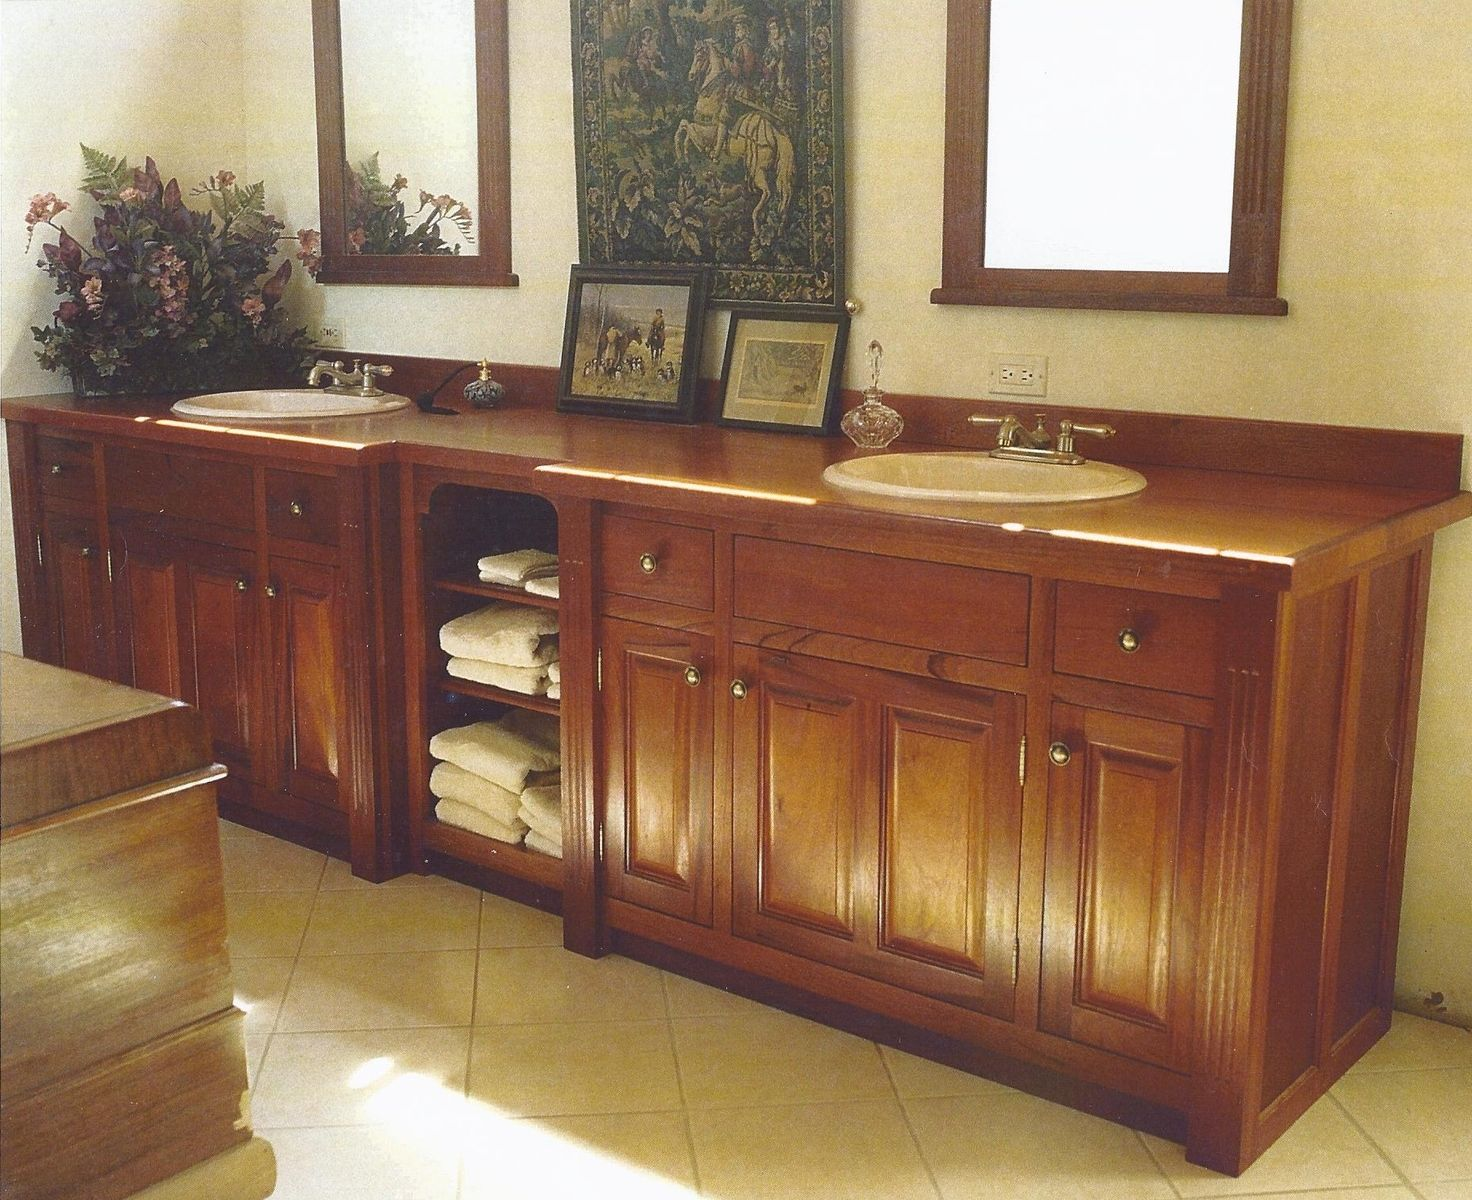 Hand Made Bathroom Vanities by Jim39;s Cabinet Shop  CustomMade.com